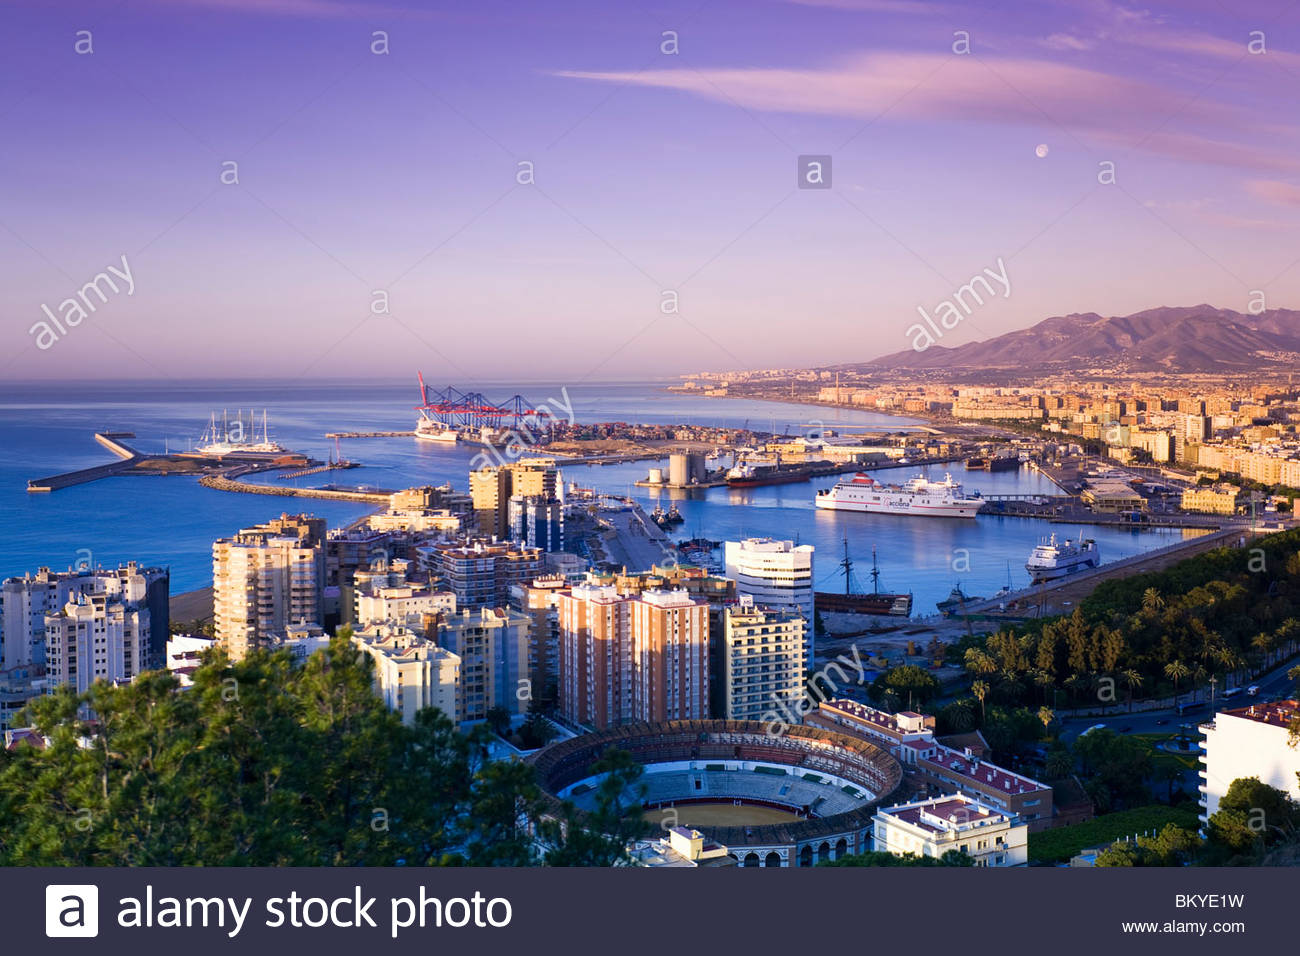 View from Gibralfaro towards Malaga and the harbour, Province Malaga, Andalucia, Spain - Stock Image